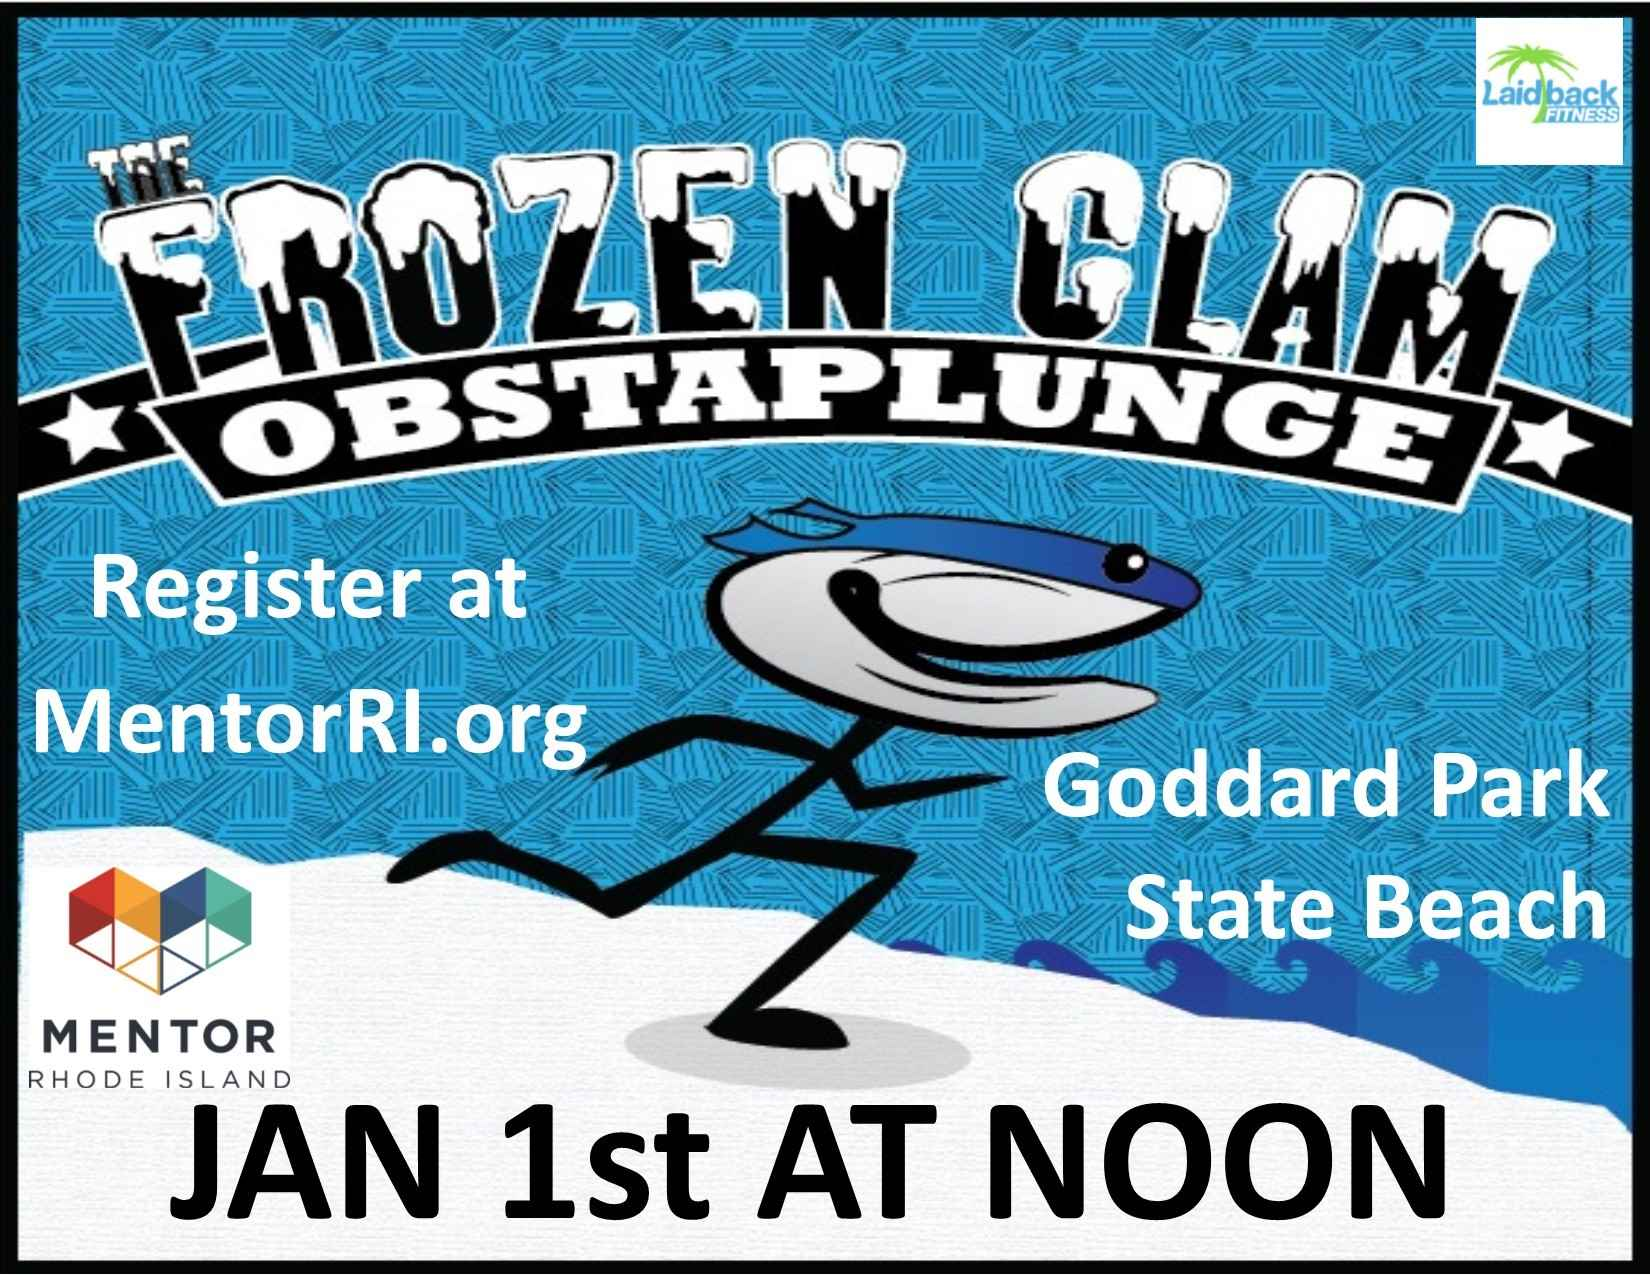 The 2019 Frozen Clam Dip & Obstaplunge image